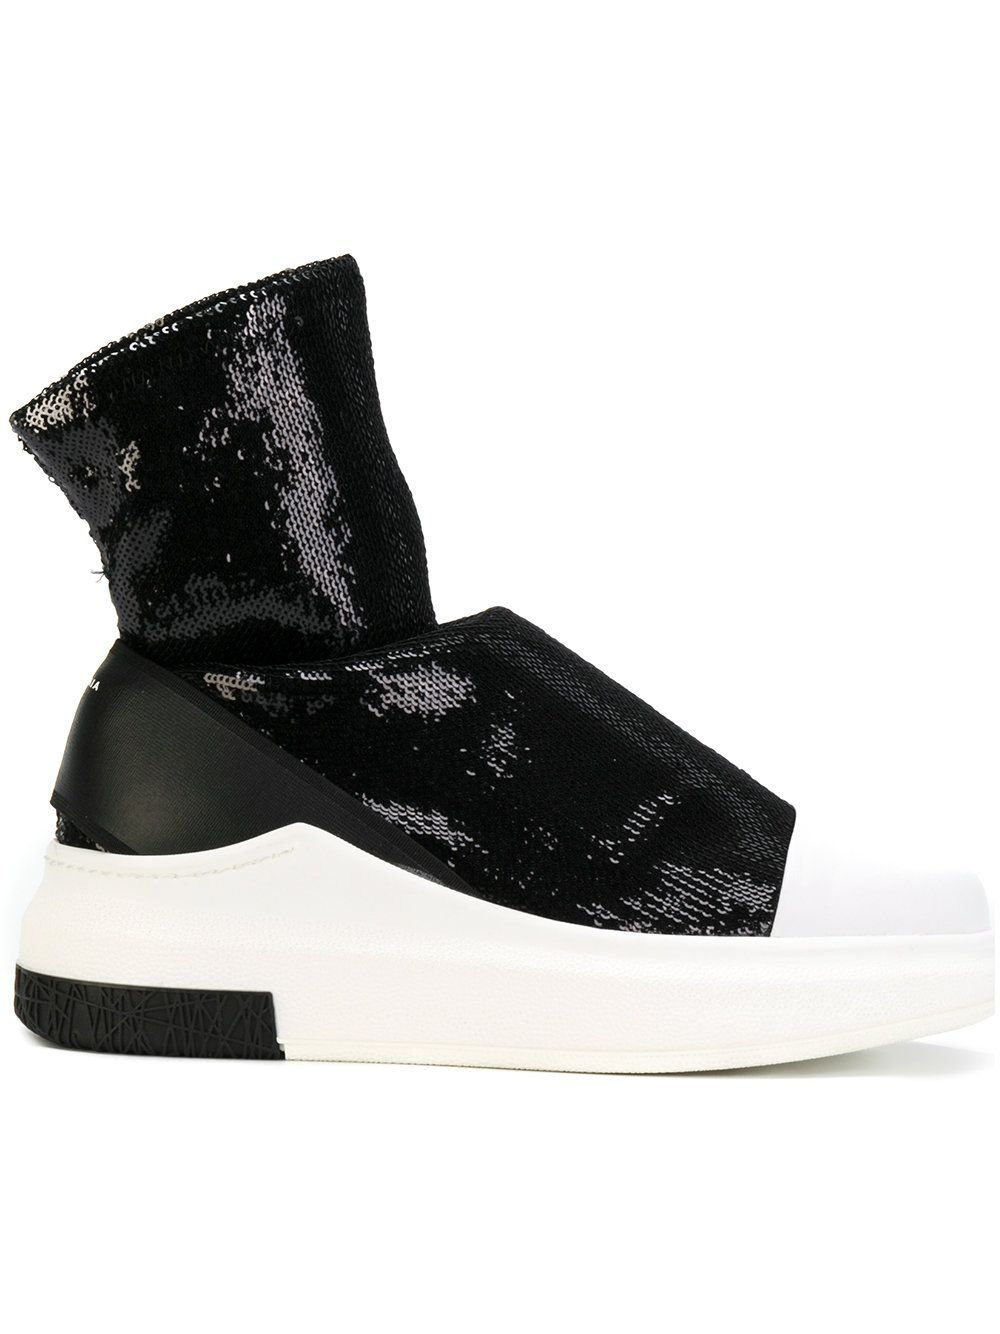 Cinzia Araia sequined sock sneakers sale shop cheap sale supply FaPsBf2